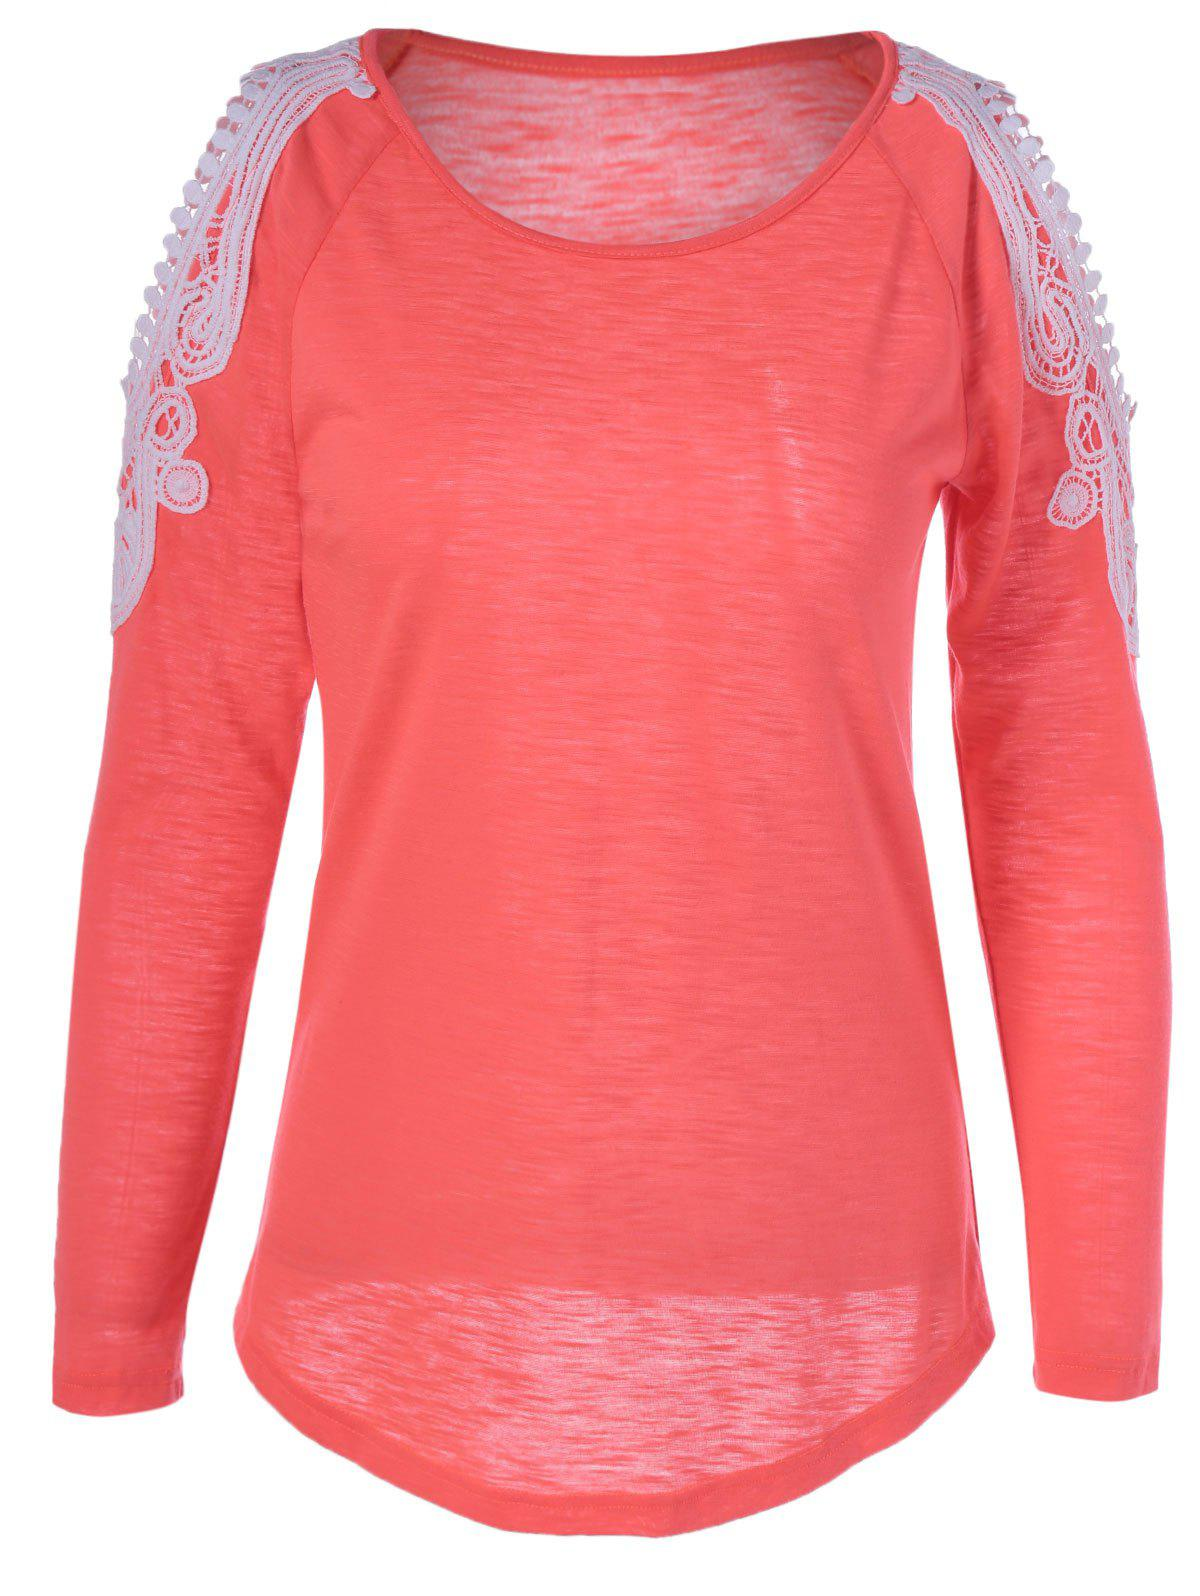 Sweet Long Sleeve Hit Color T-Shirt - ORANGE RED XL